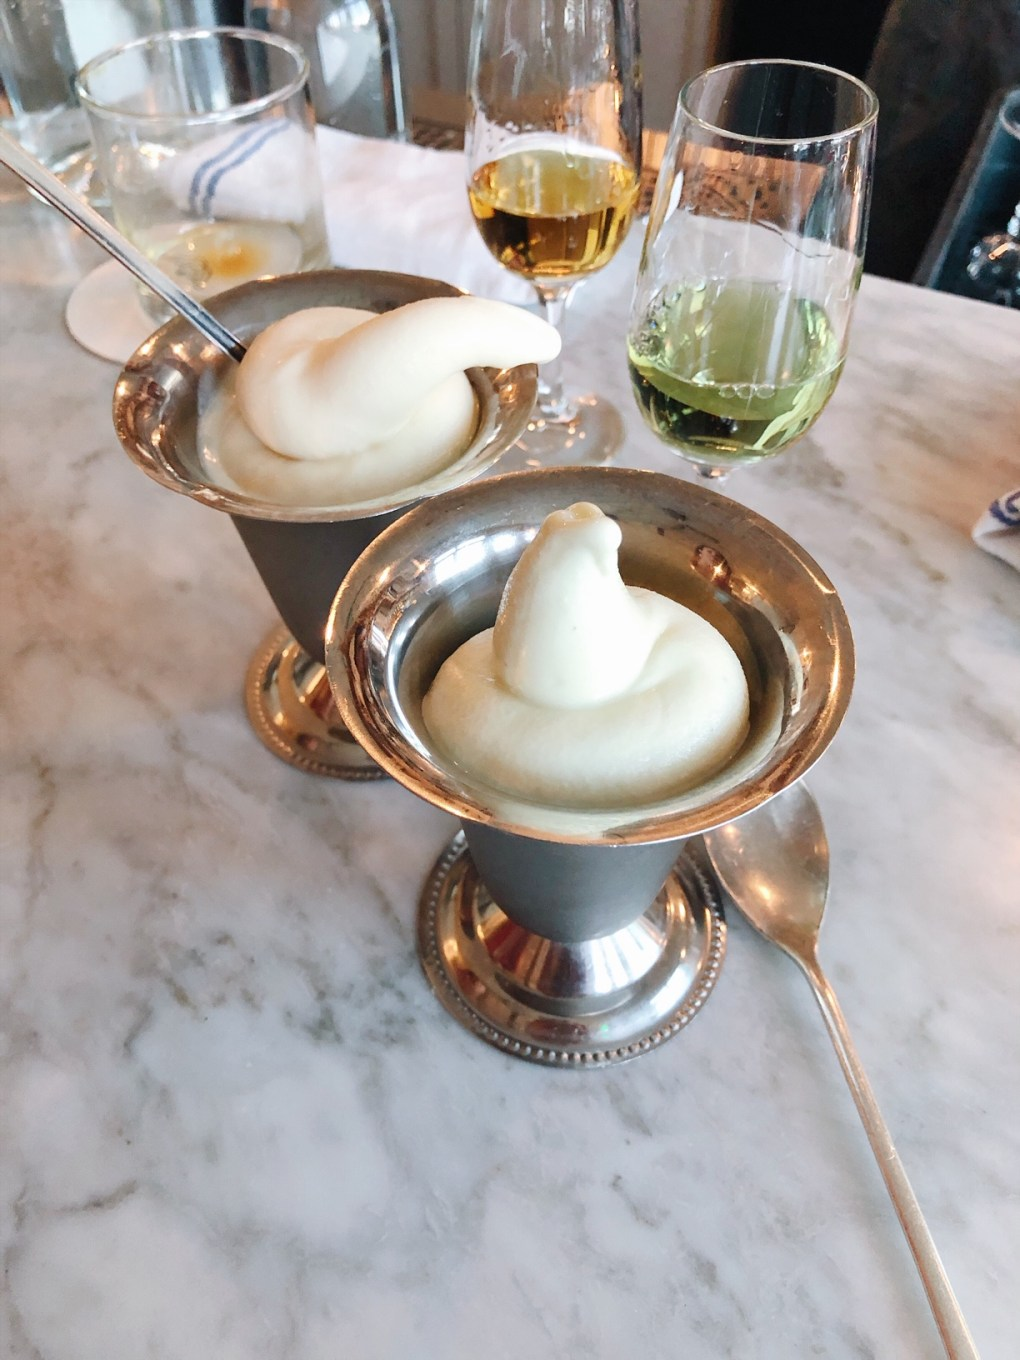 Two metal dishes of soft serve on a bar top next to two glasses of digestifs